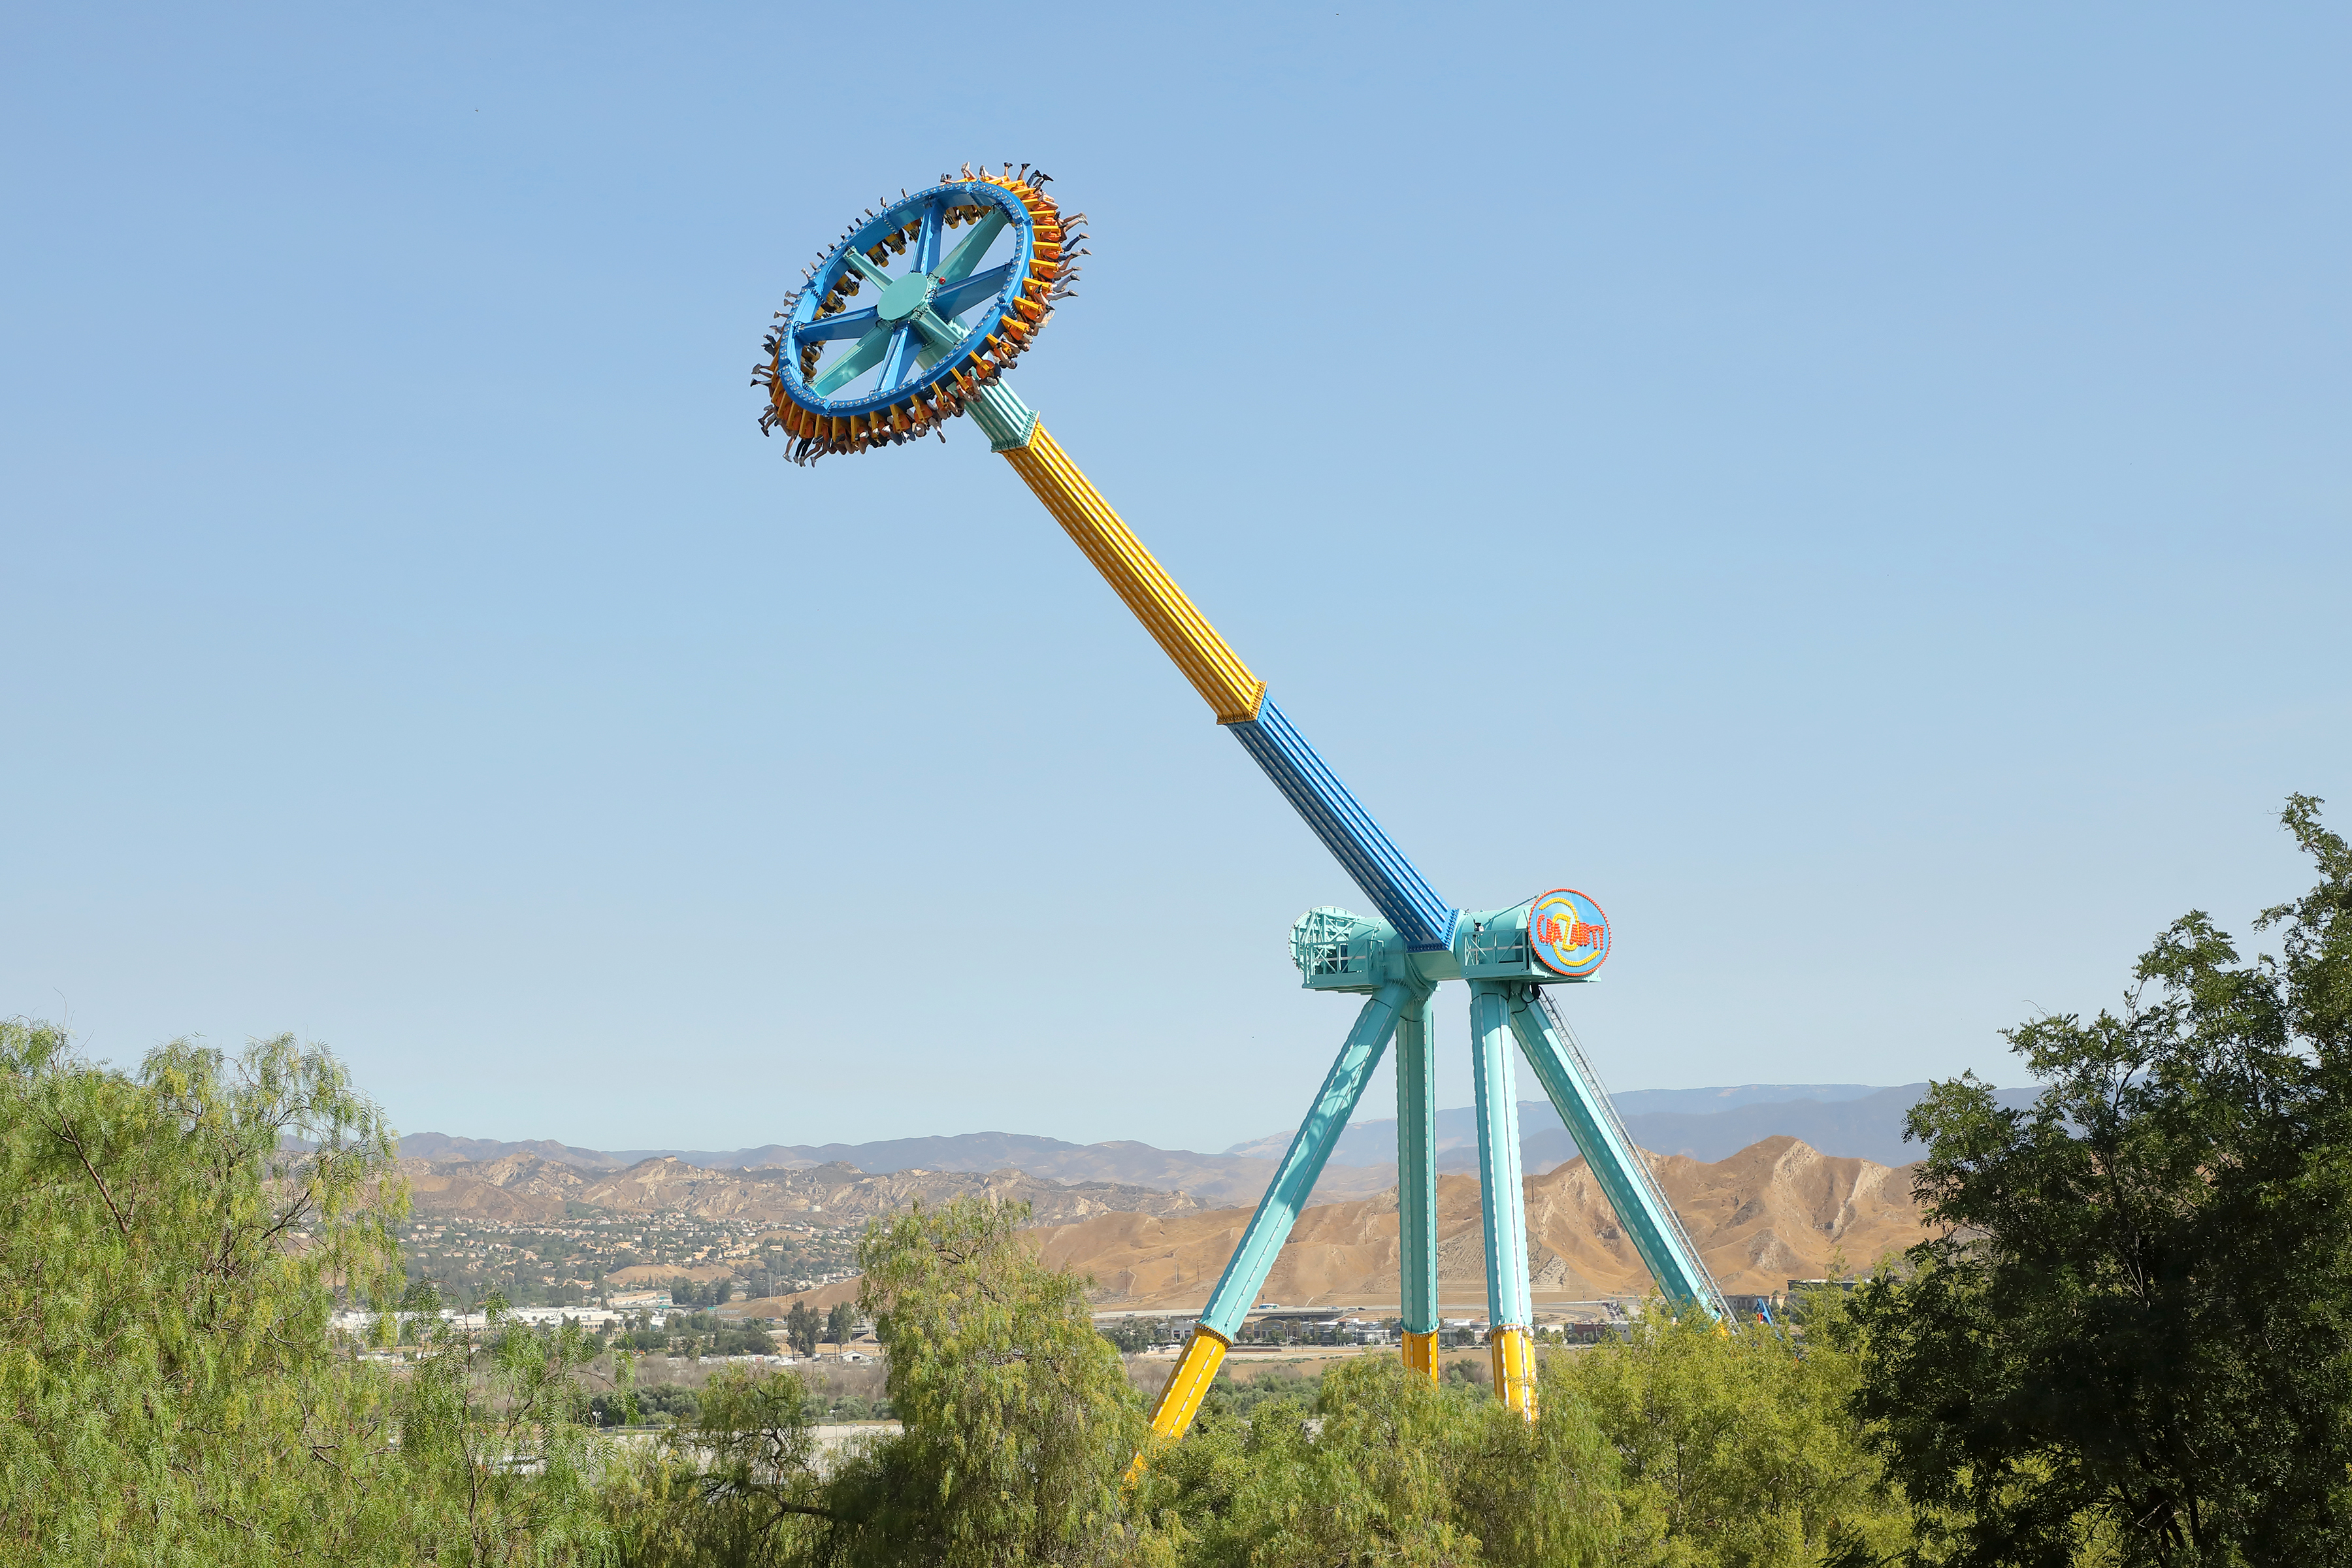 Worlds Tallest Pendulum Ride Crazanity Debuts At Six Flags Magic Mountain Business Wire